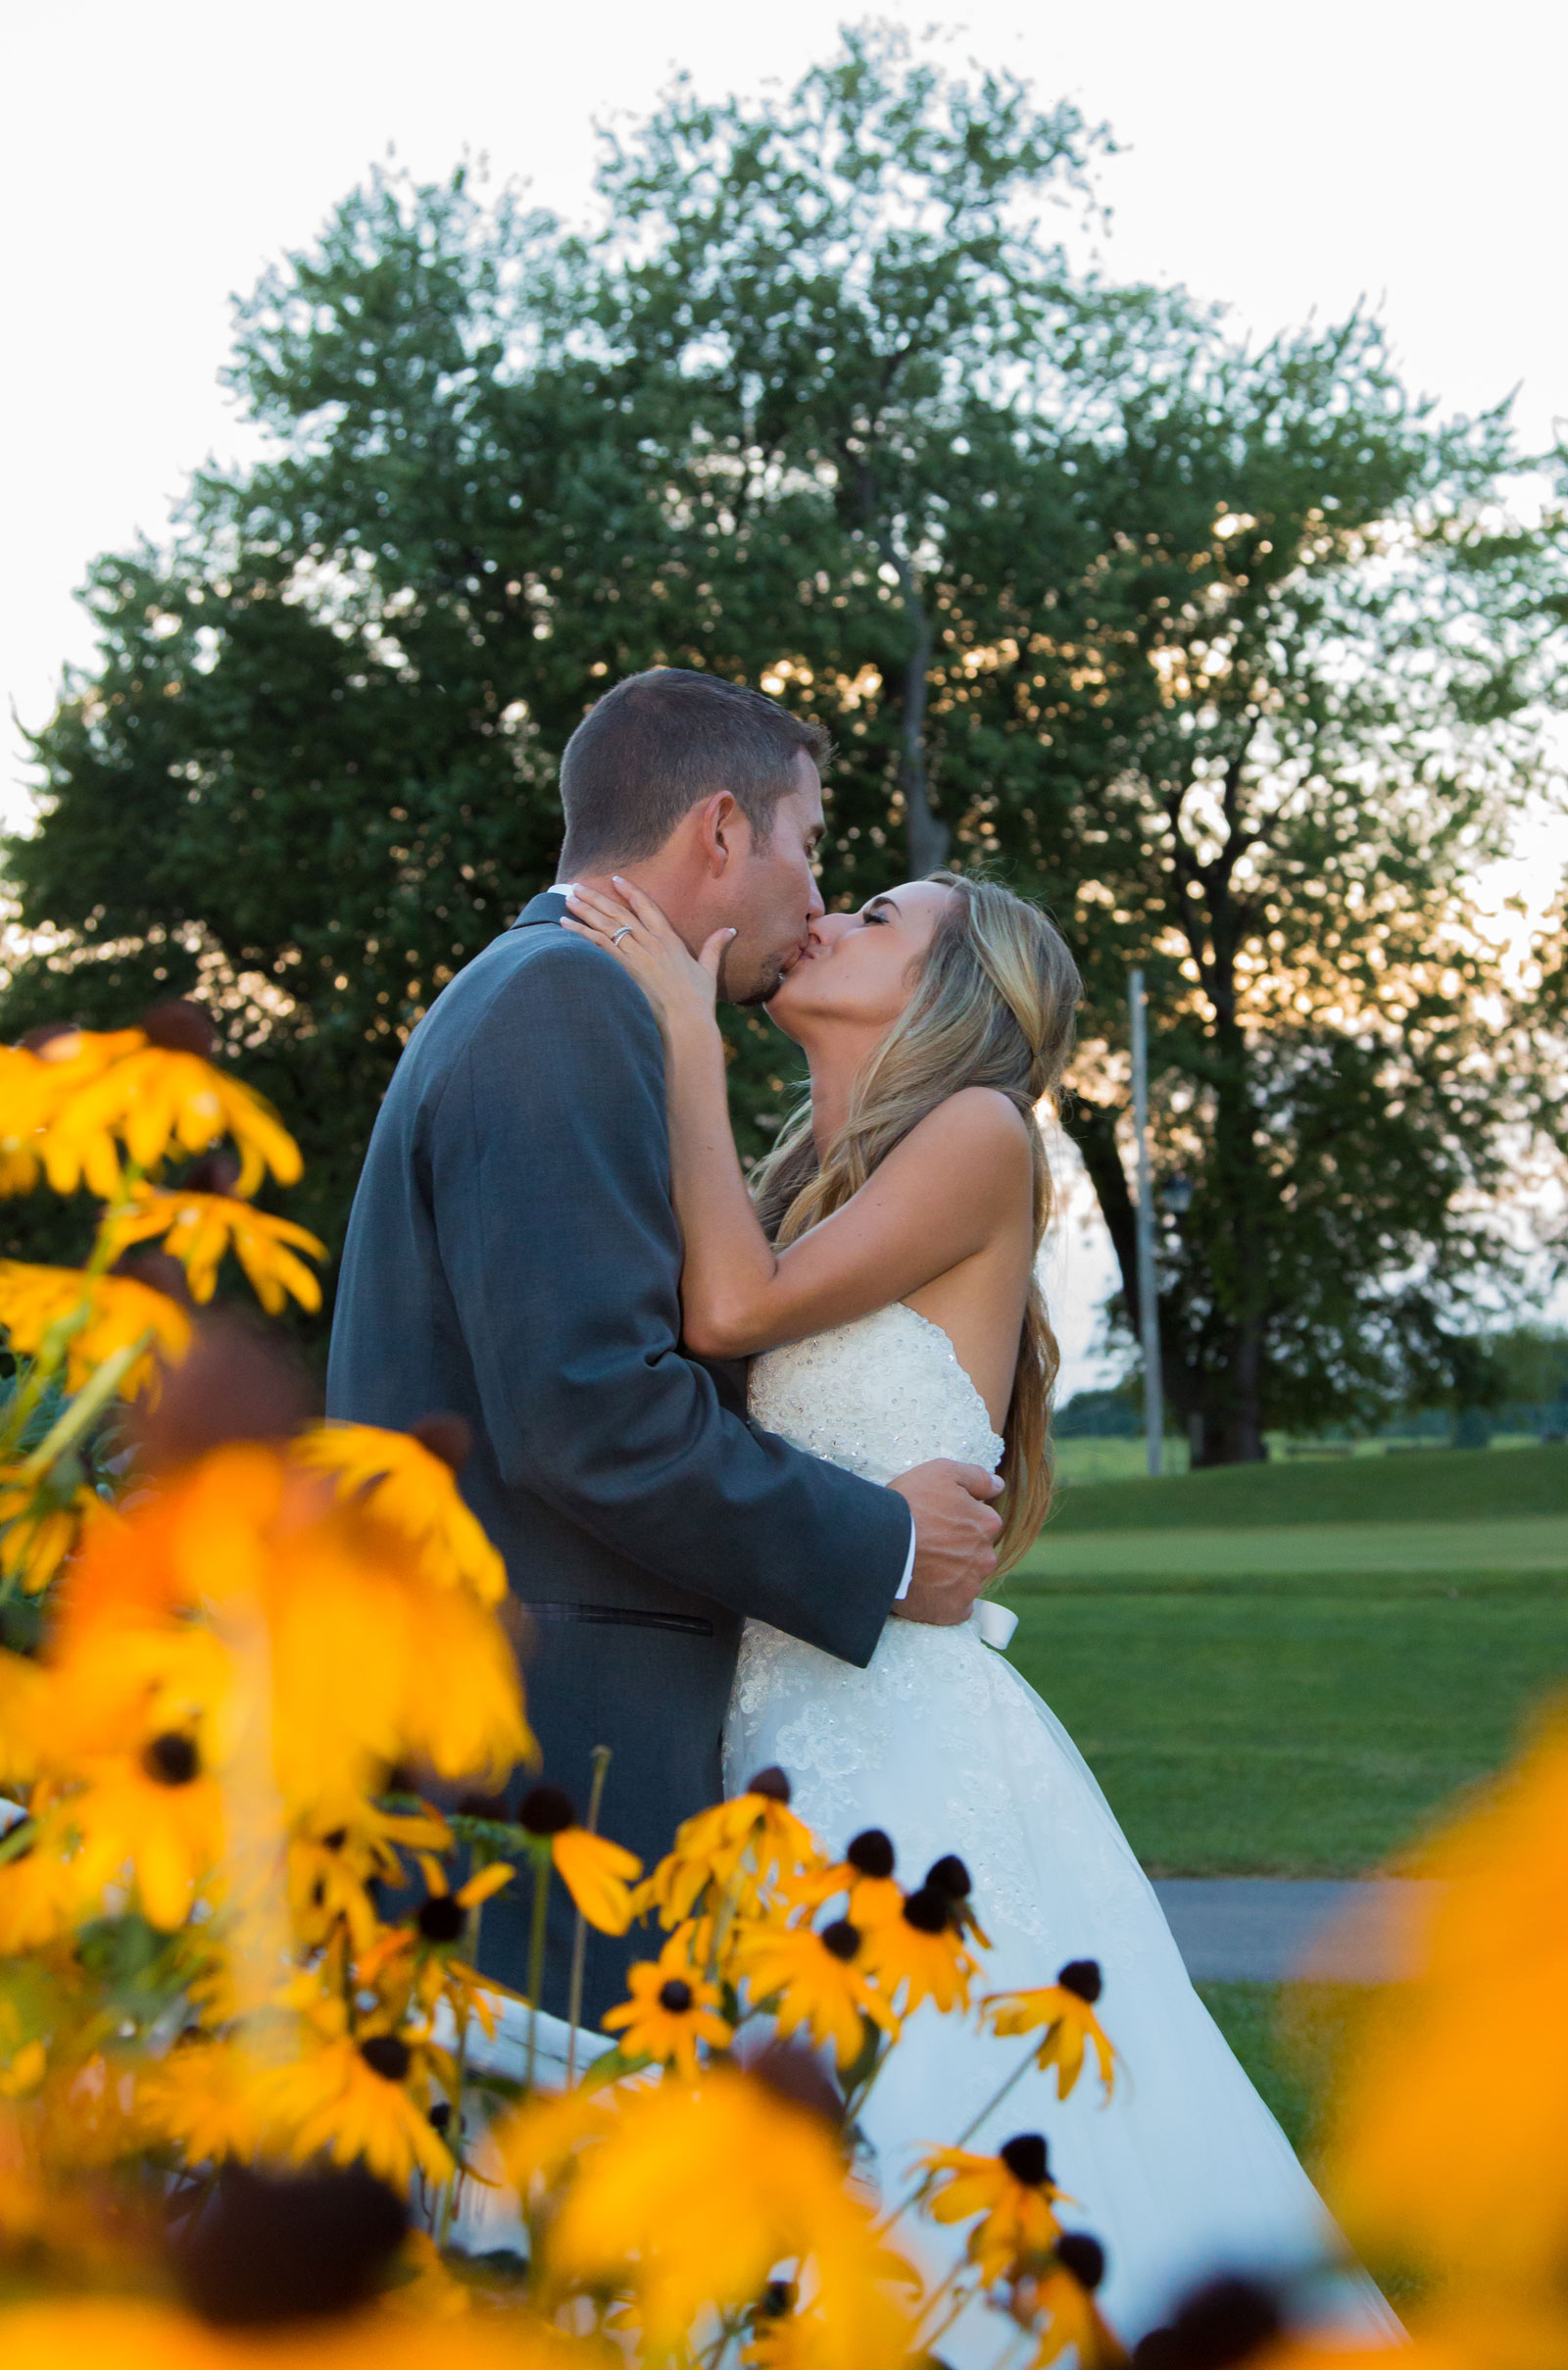 Webster, NY Wedding bride kisses groom by flowers